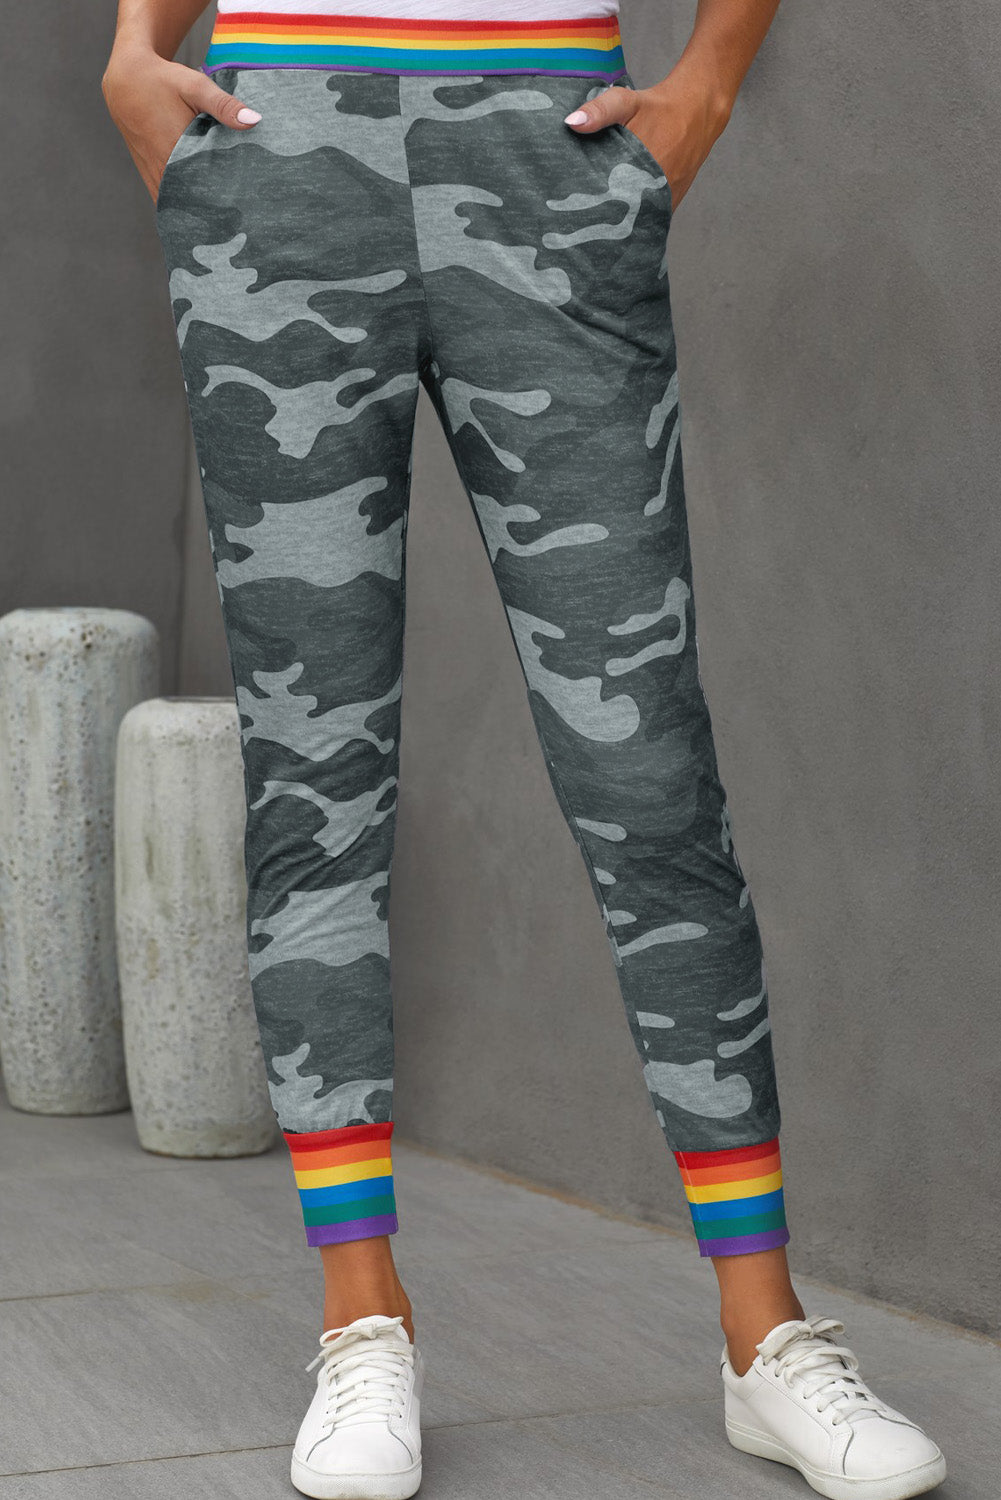 Rainbow Stripe Gray Camo Casual Pants